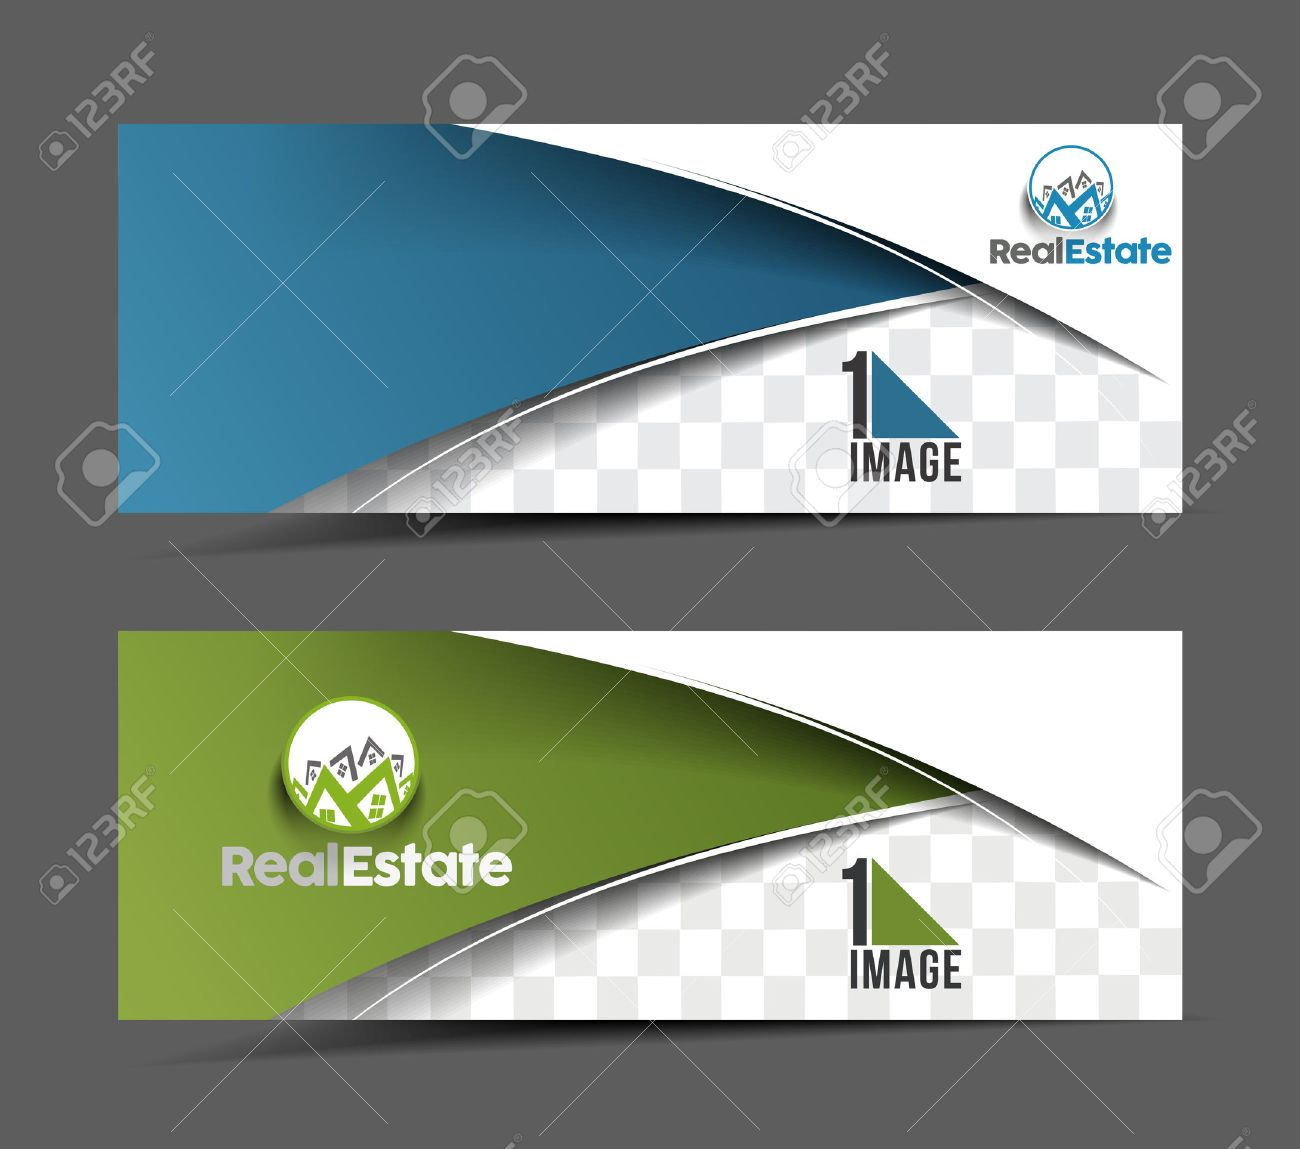 real estate business ad web banner header layout template real estate business ad web banner header layout template stock vector 41833353